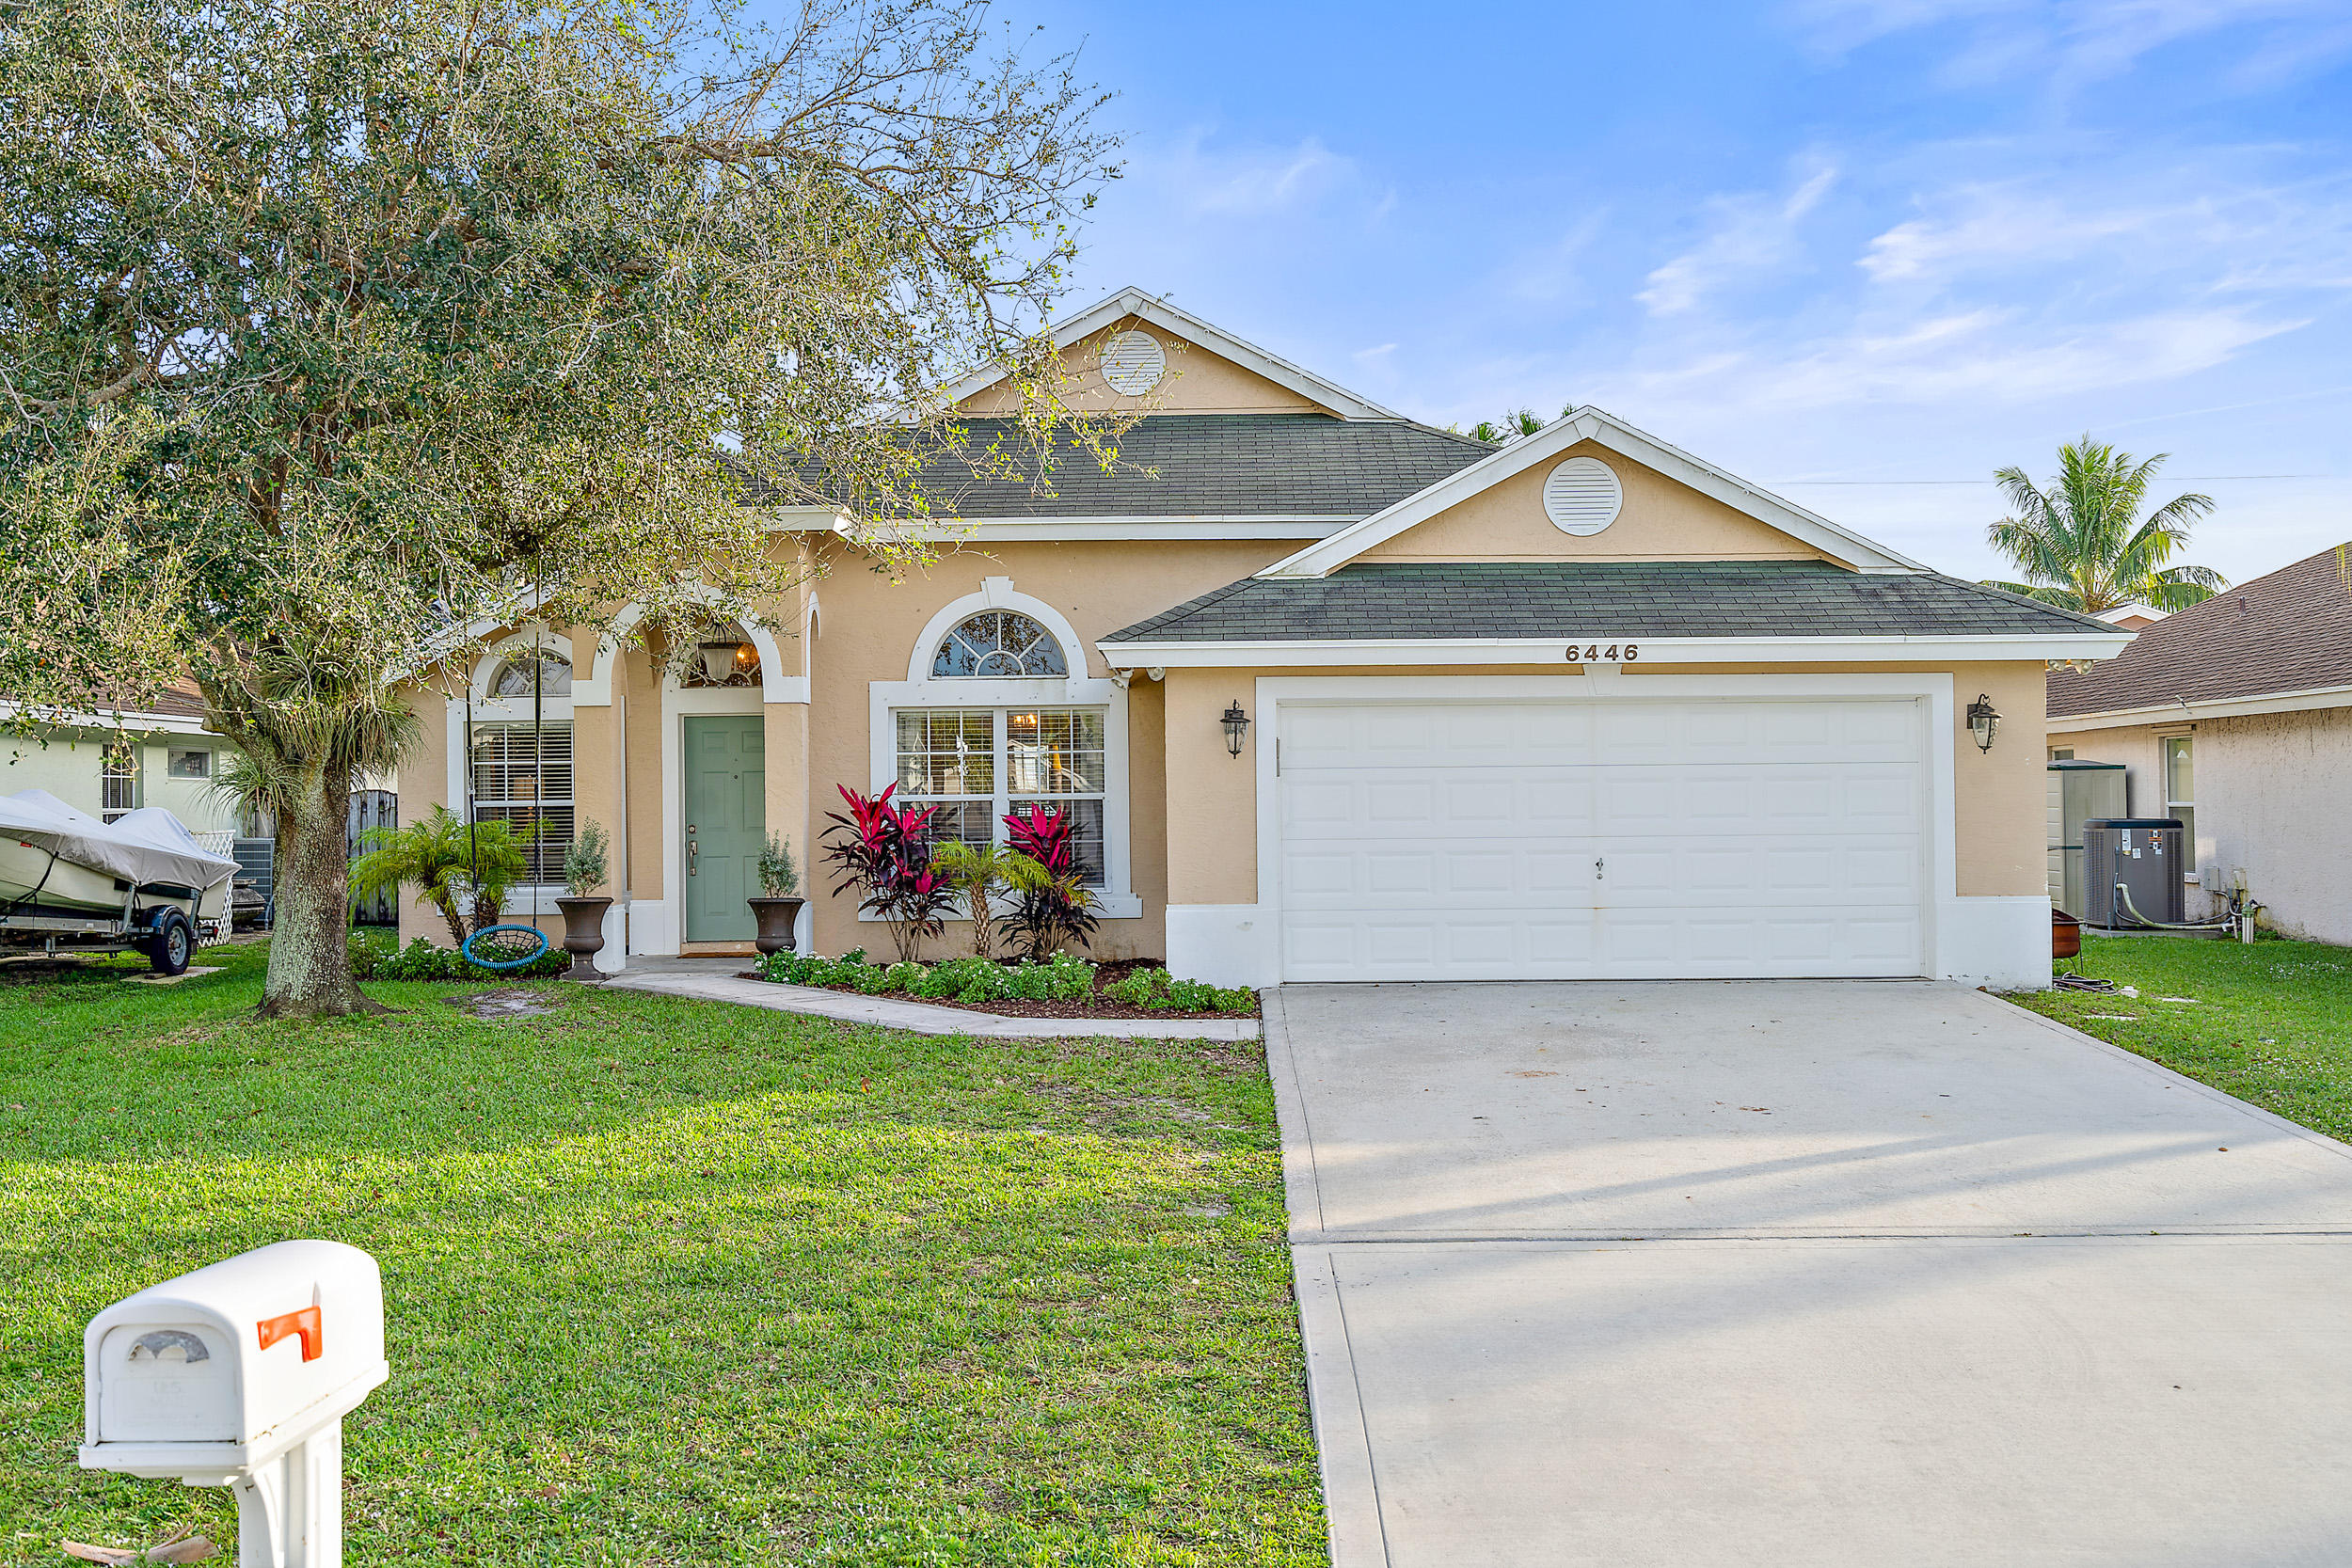 Photo of 6446 Foster Street, Jupiter, FL 33458